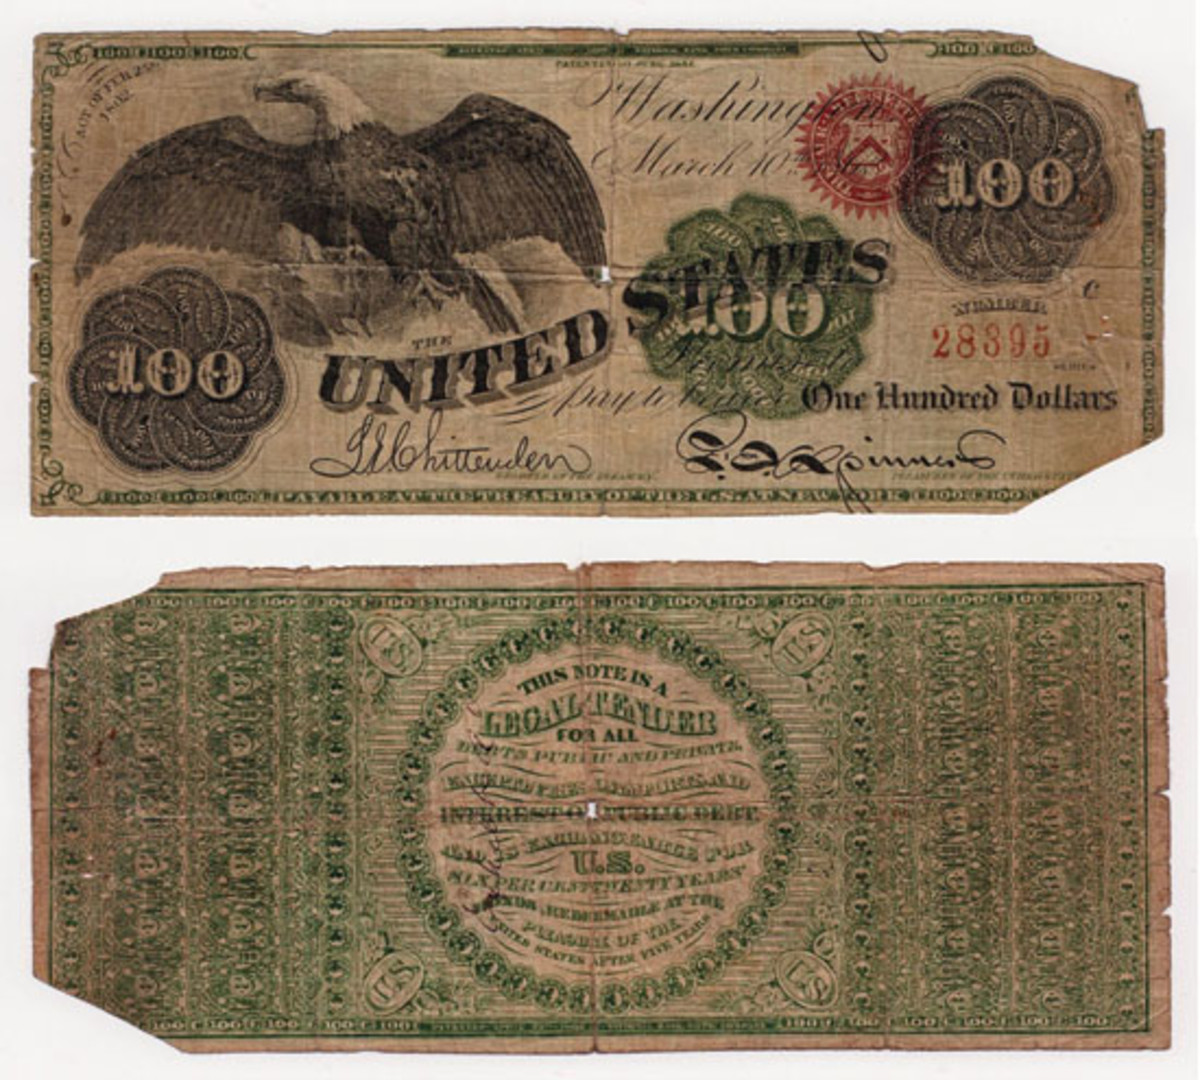 Front and back of the counterfeit $100 1862 legal tender note at the center of a court case between a fertilizer company based in Savannah, Ga., and a Knoxville, Tenn., bank. (Image courtesy of author)